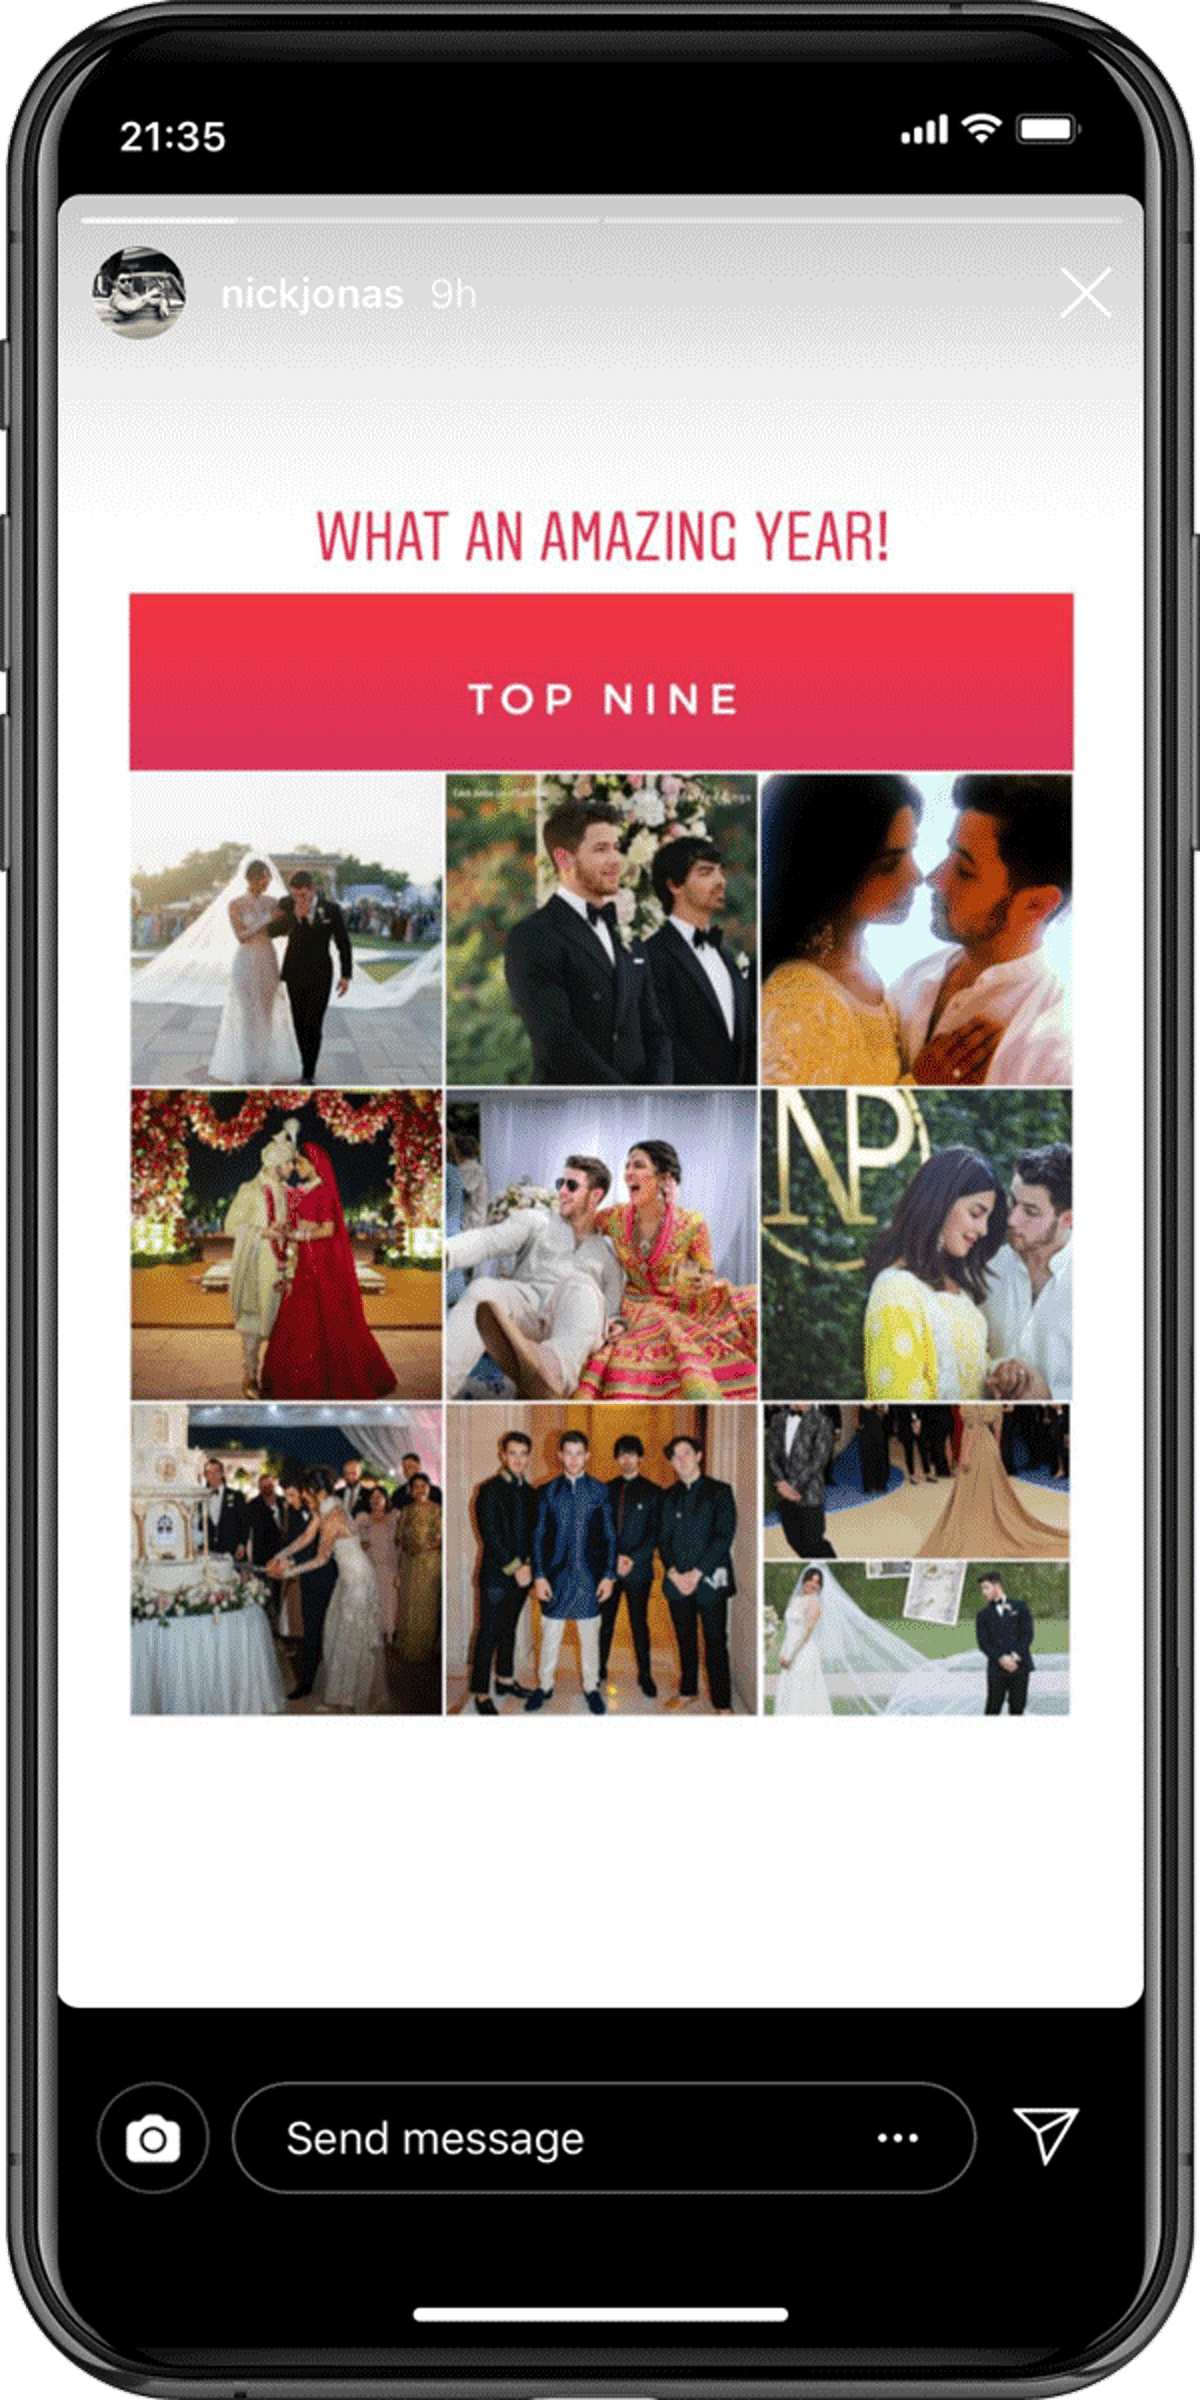 Will Instagram Have Best Nine In 2019? The answer is yes, so get ready to look back on your year.